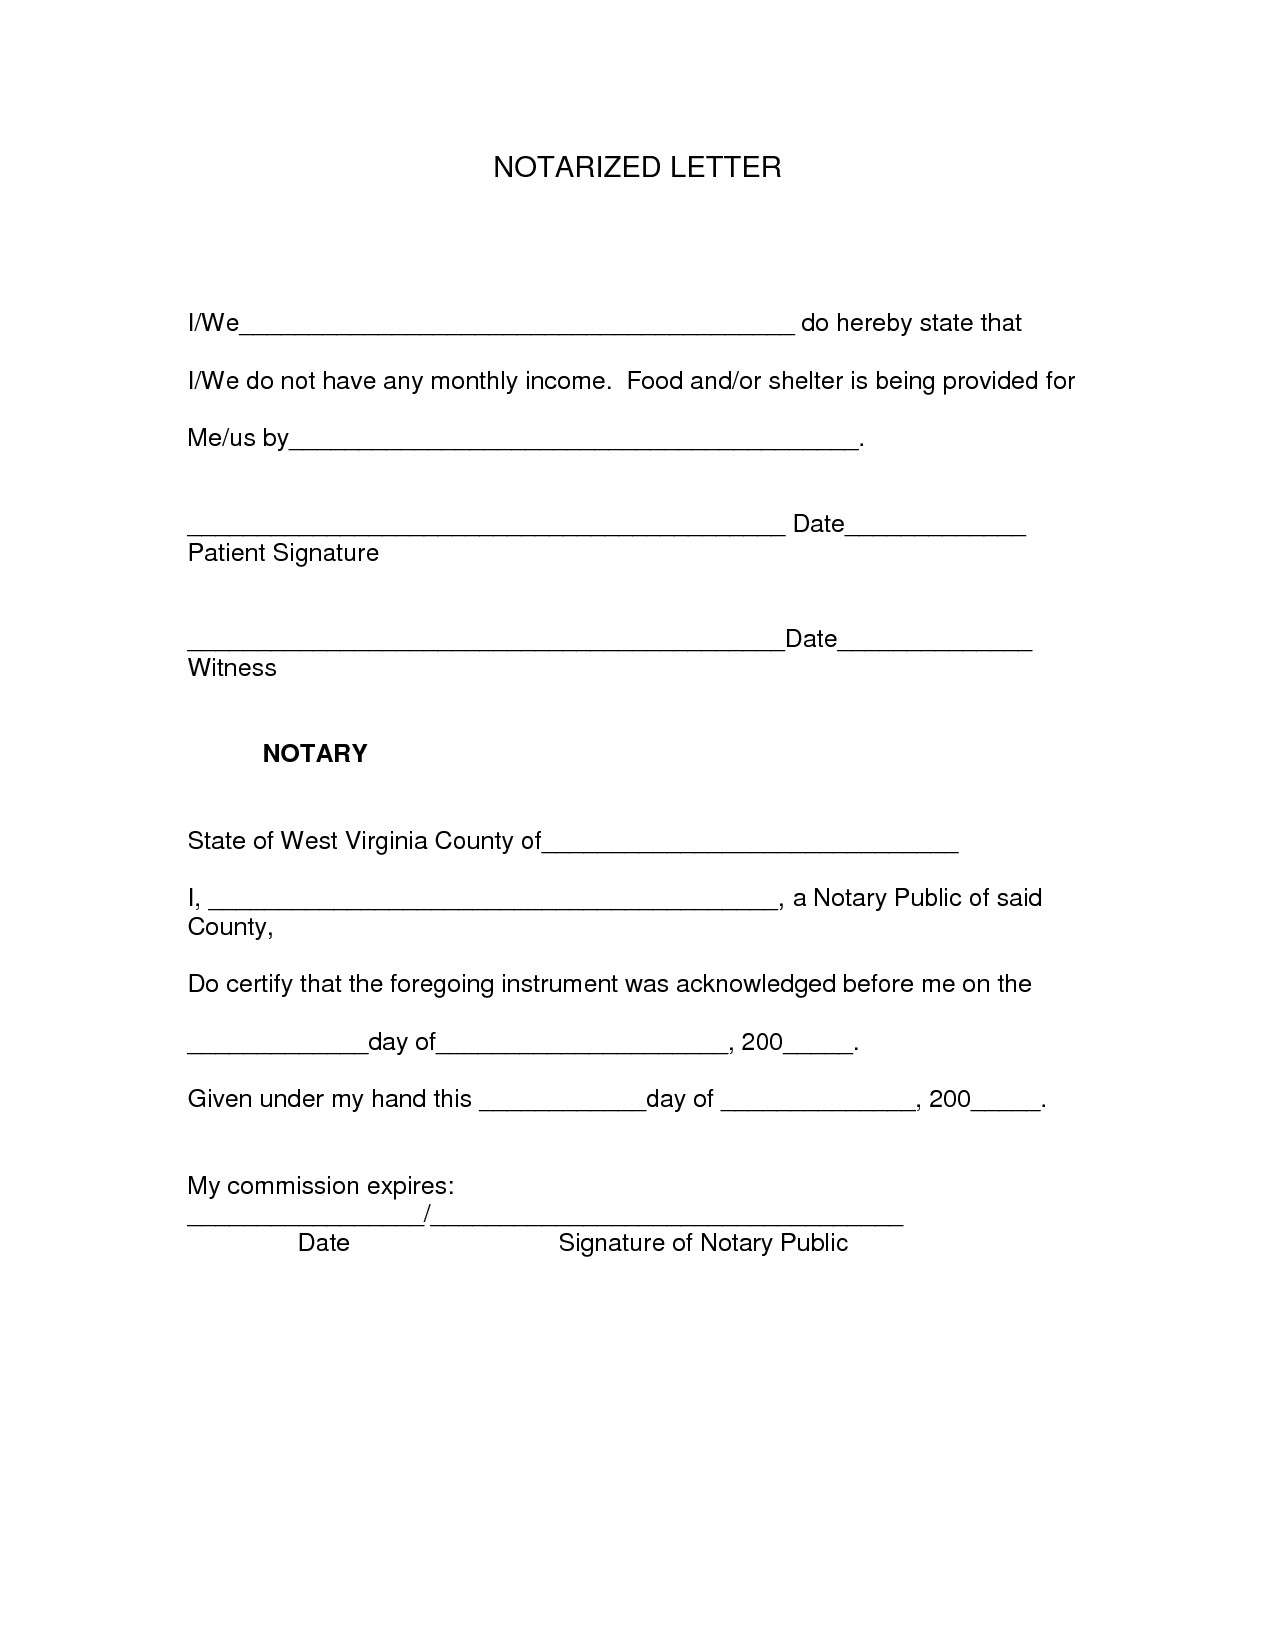 notary letter template Collection-notary letter 2-r